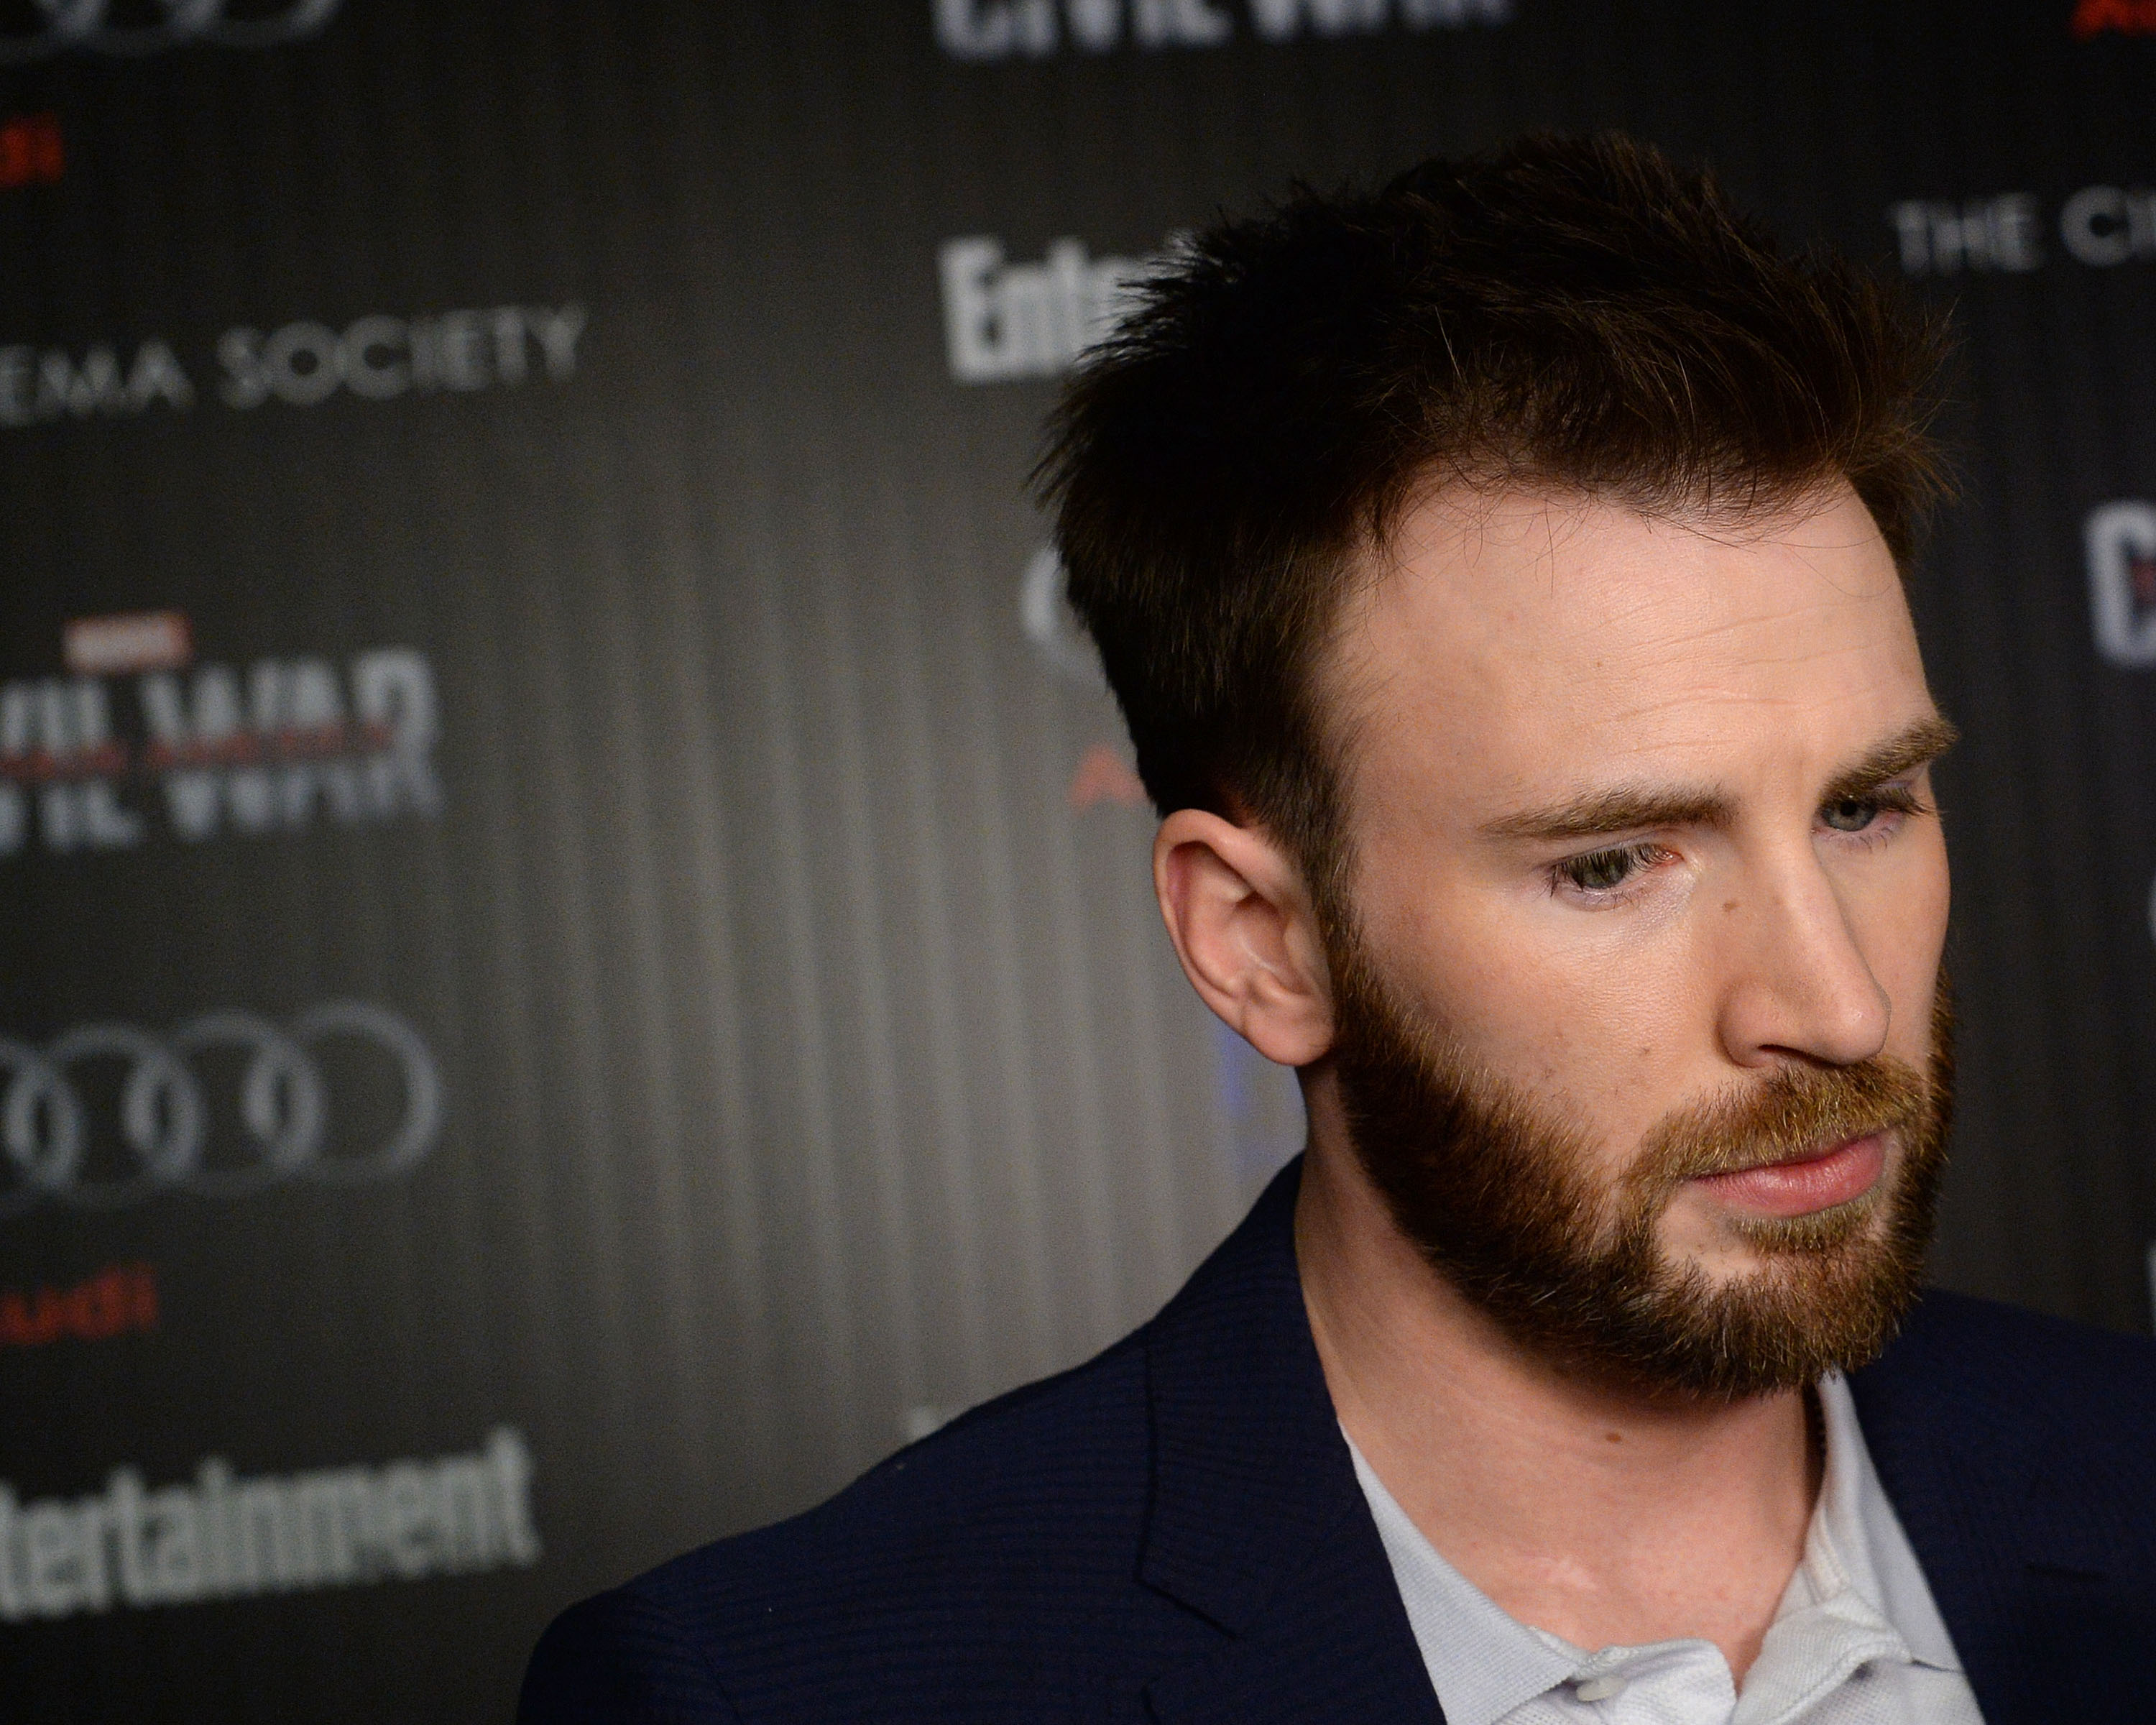 Actor Chris Evans attends a screening of Marvel's 'Captain America: Civil War' in 2016